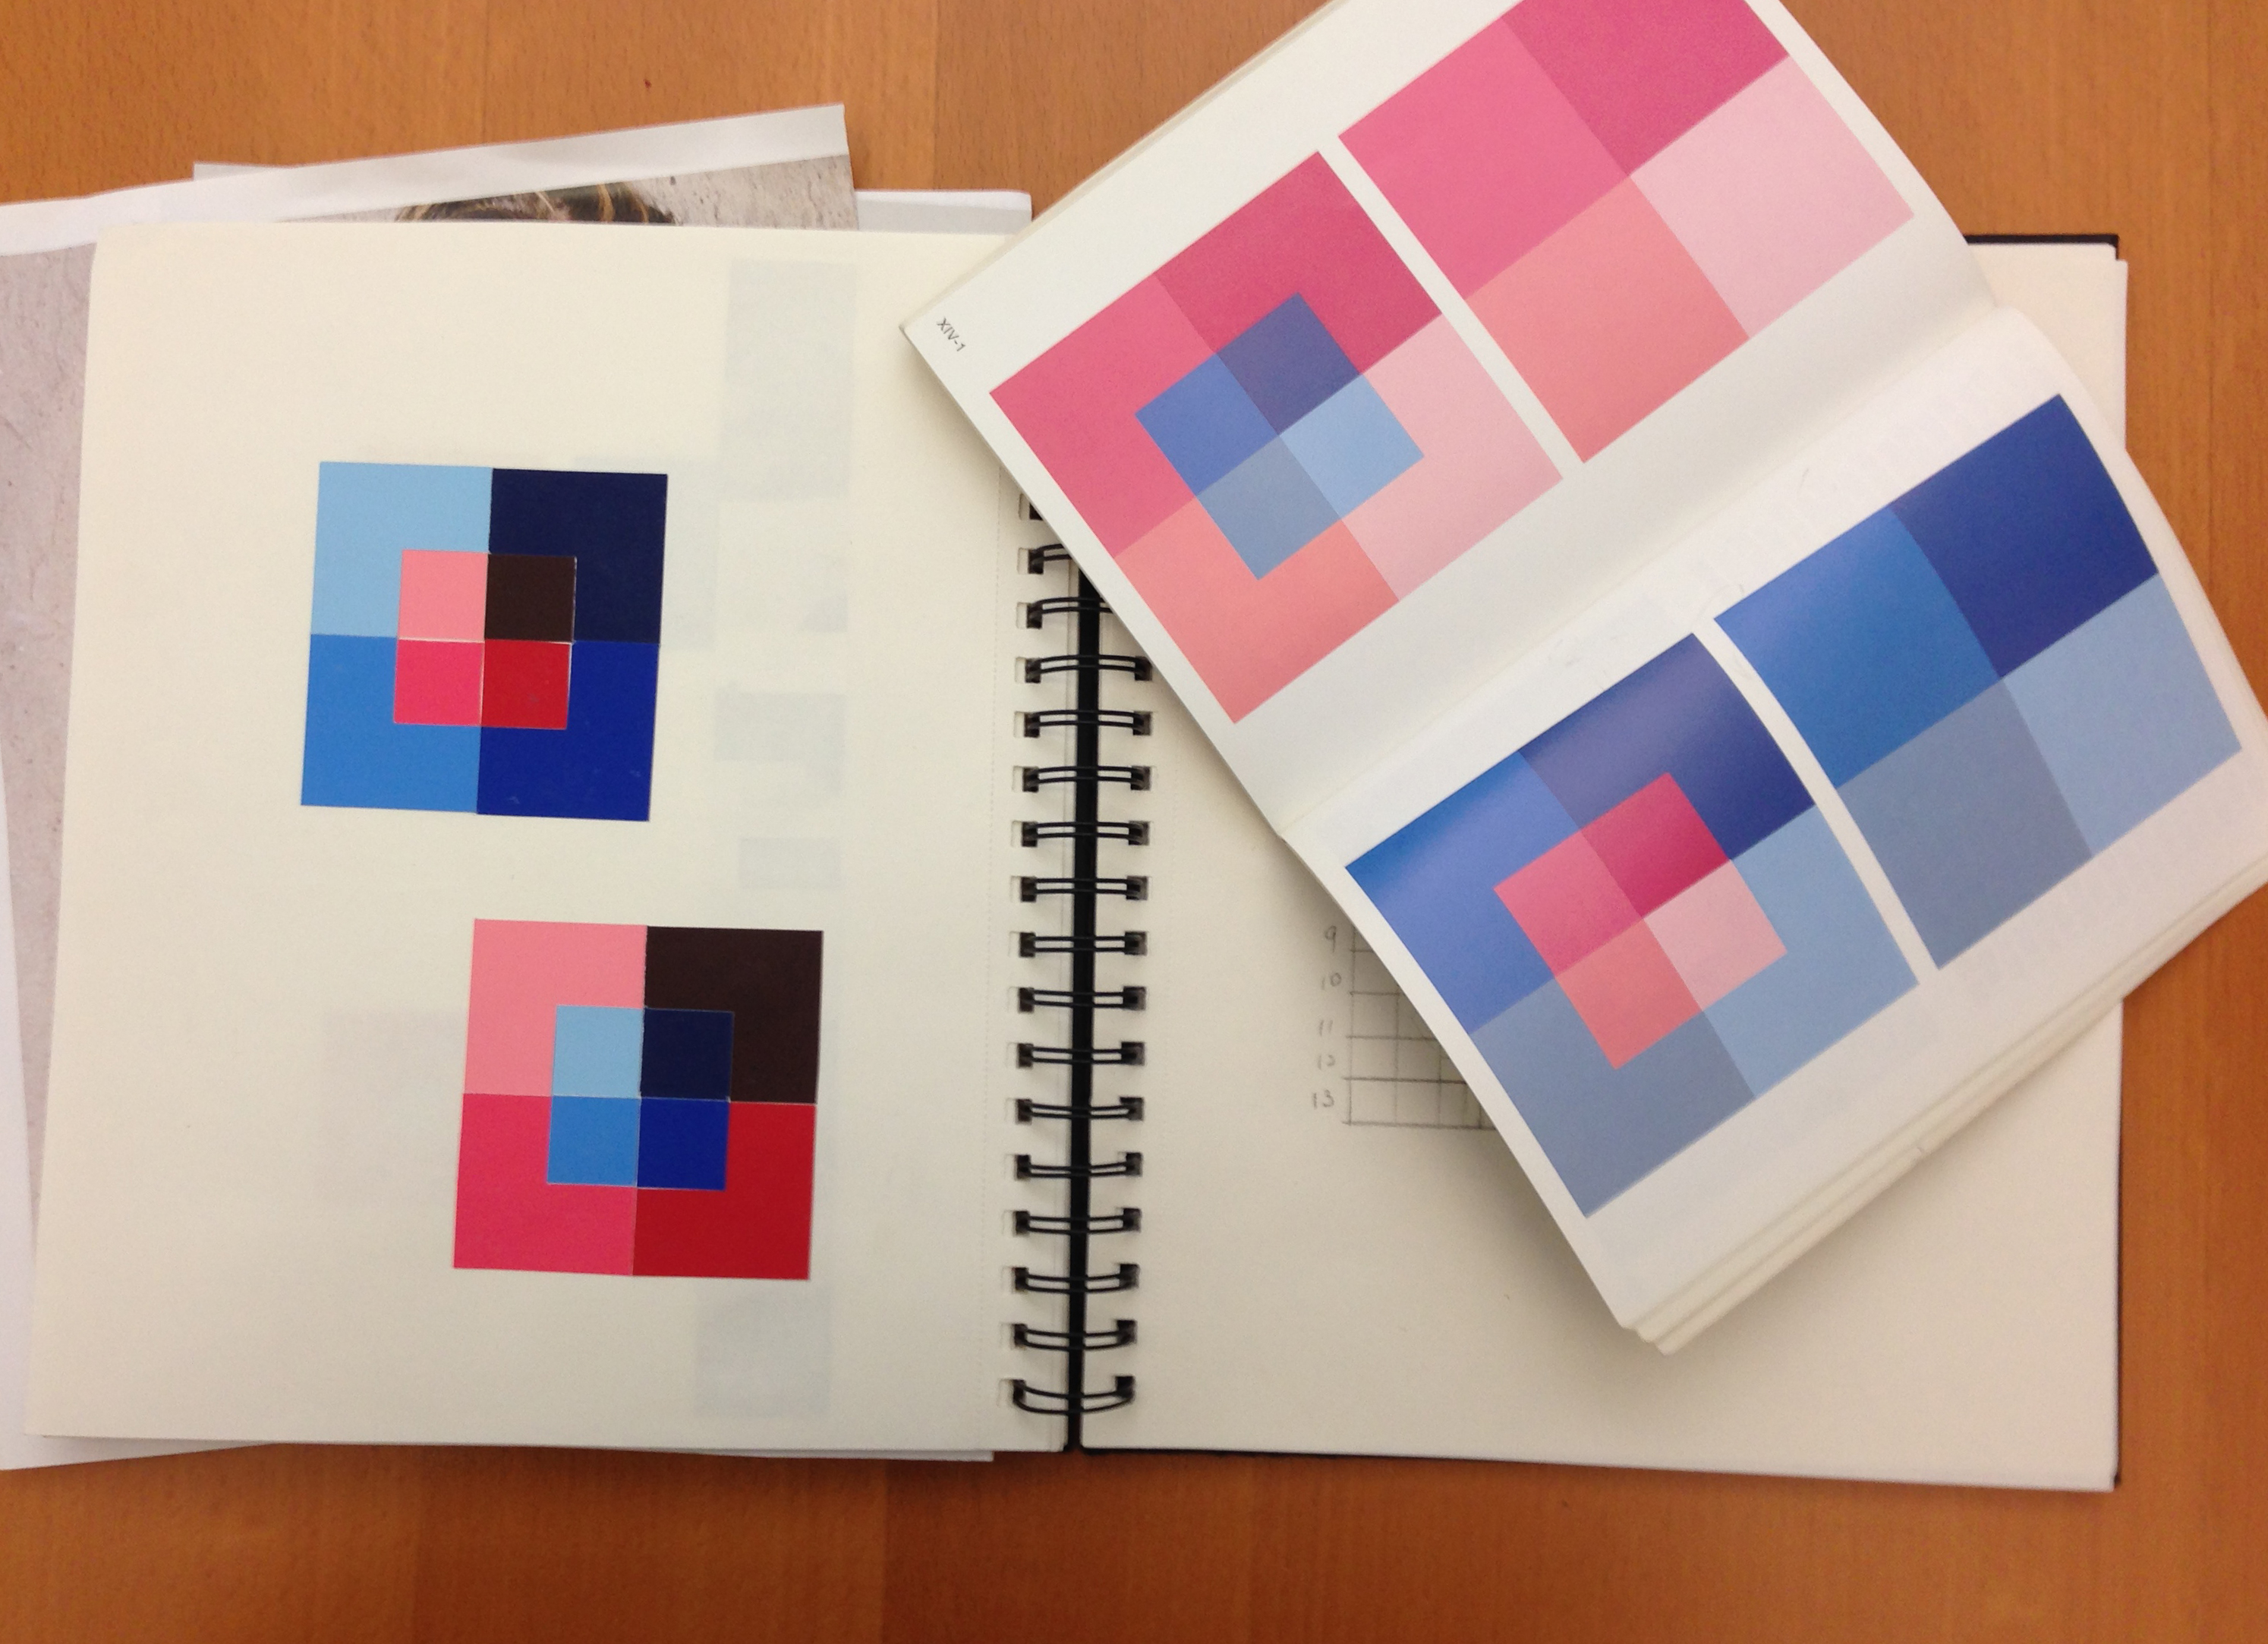 Color printing depaul - Due 3 Readings Color Chromatic Algorithms Page 23 31 Hw Read Testimony Of The Senses Page 20 44